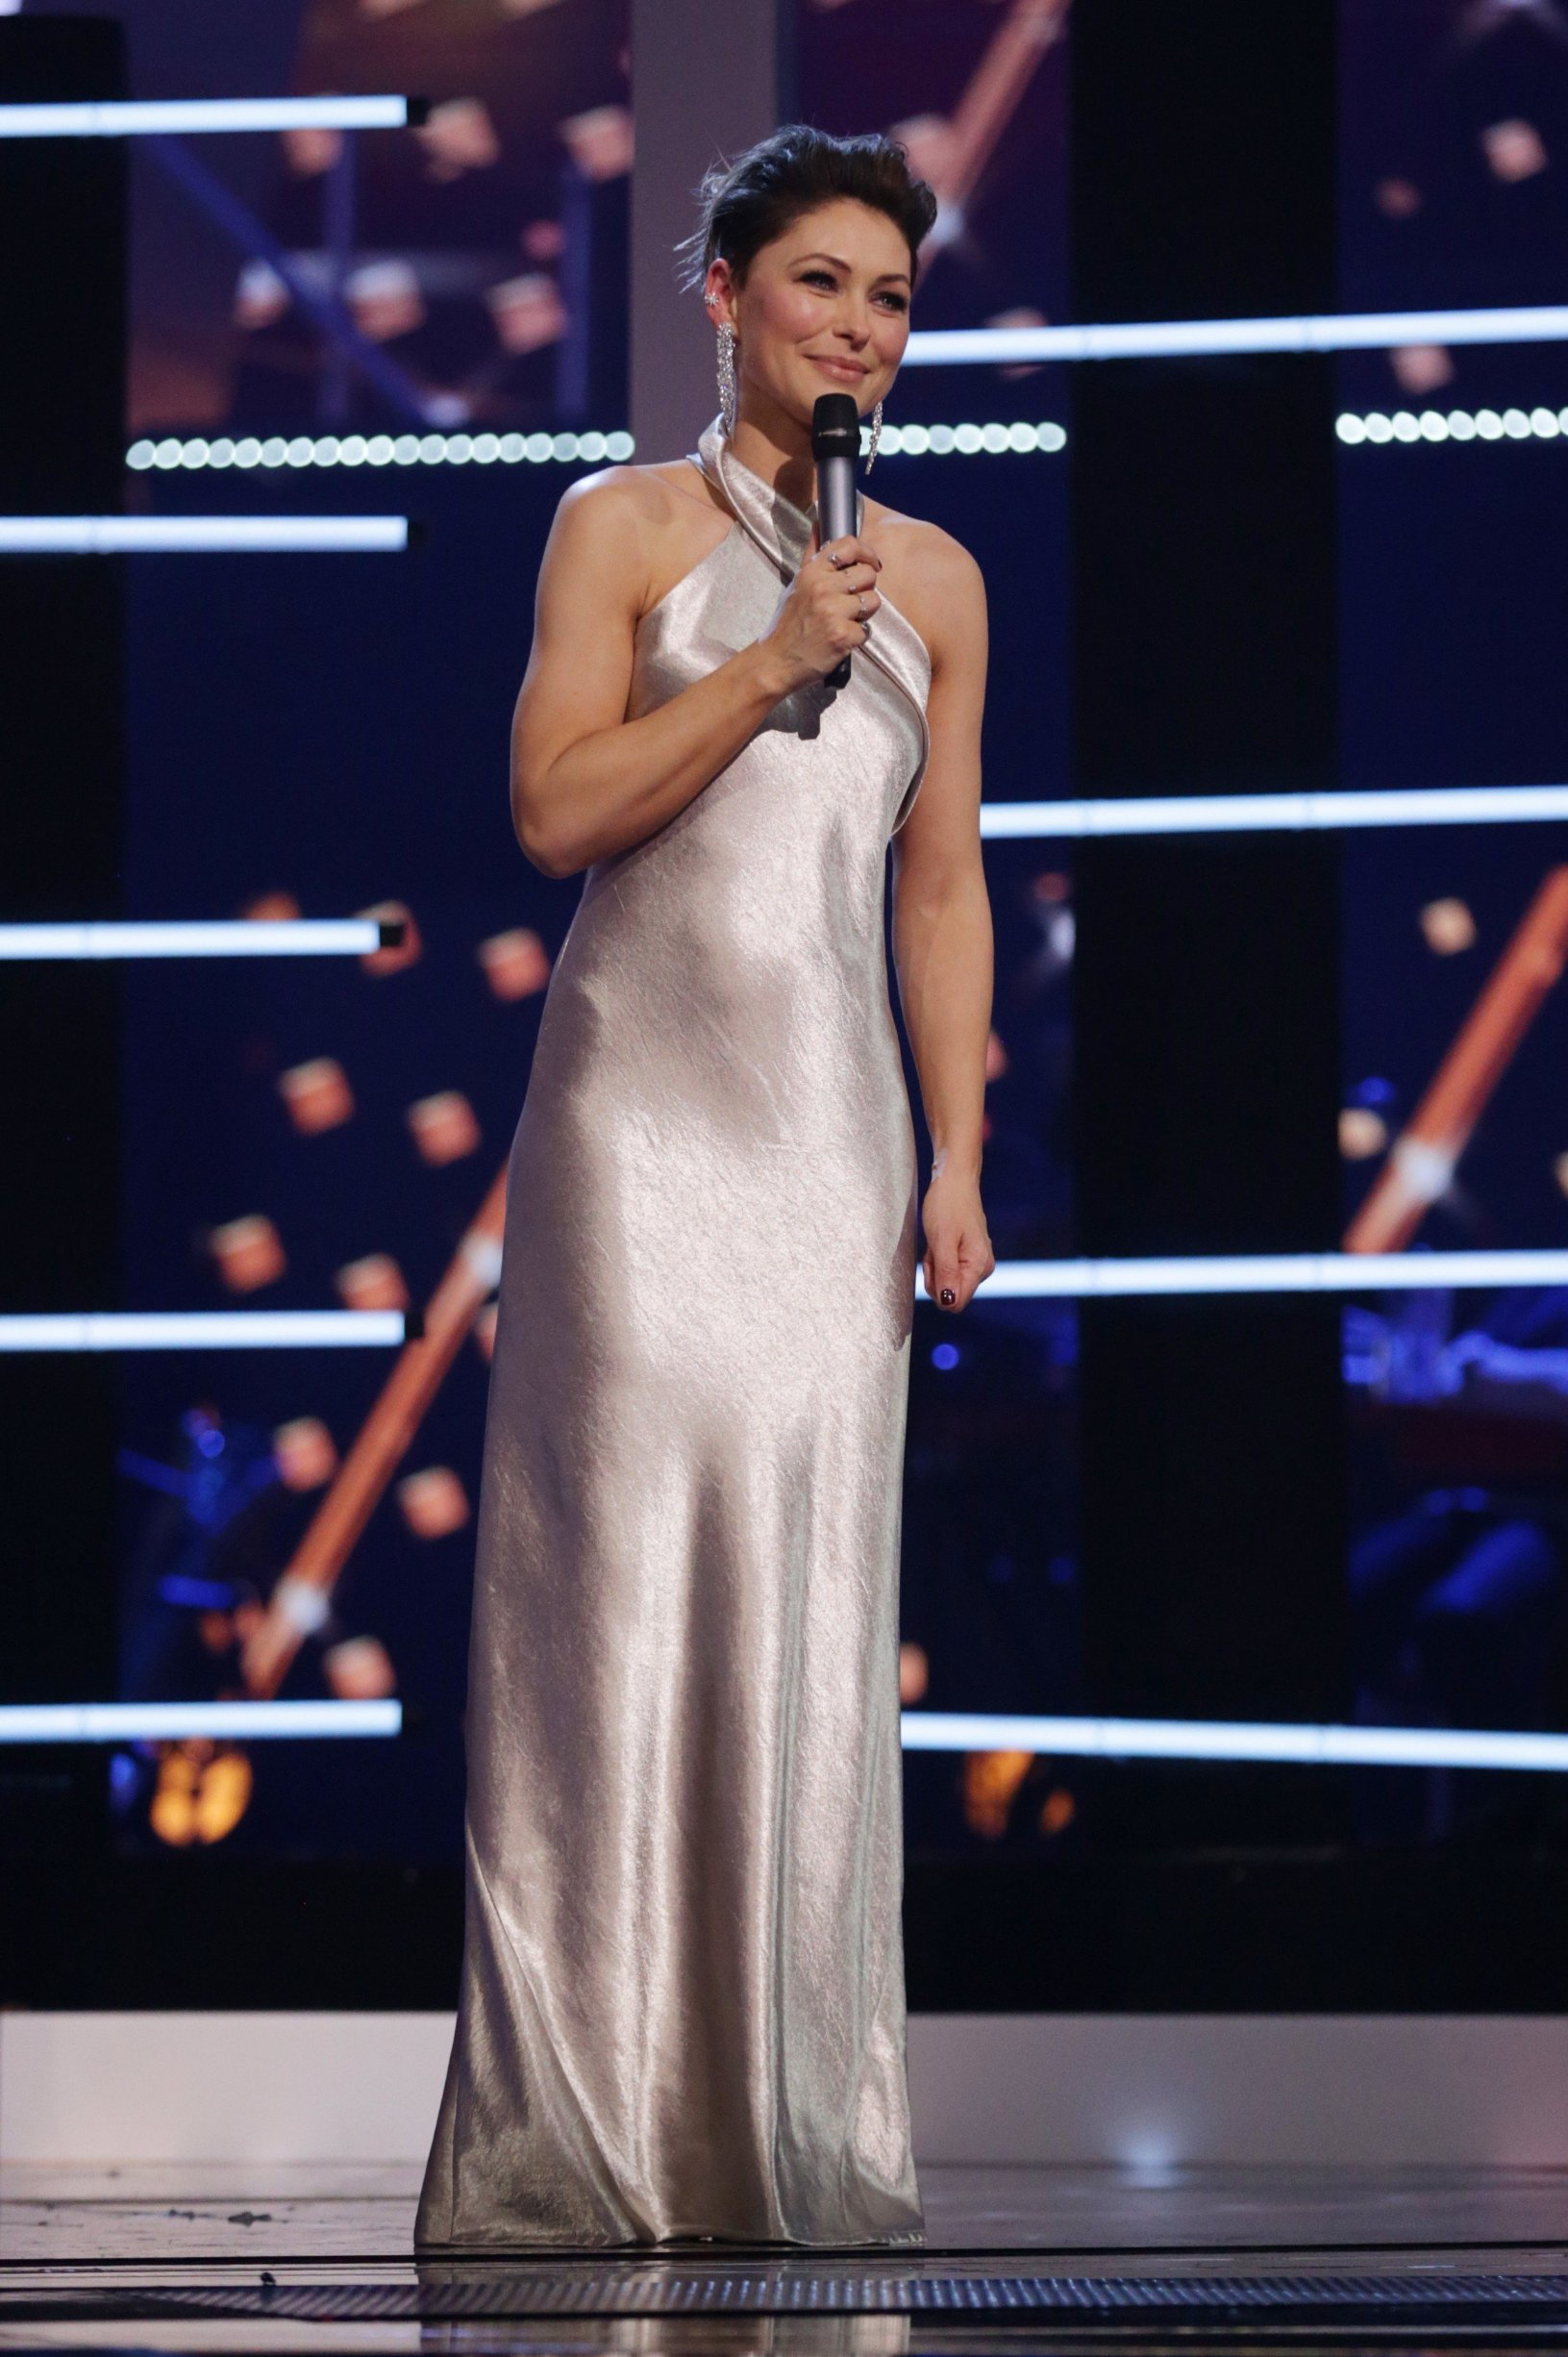 Emma Willis 'The Voice UK' TV Show, Series 7, Episode 14, The Final, London, UK - 07 Apr 2018, Image: 367963015, License: Rights-managed, Restrictions: Editorial Use Only/No Merchandising, Model Release: no, Credit line: Profimedia, TEMP Rex Features